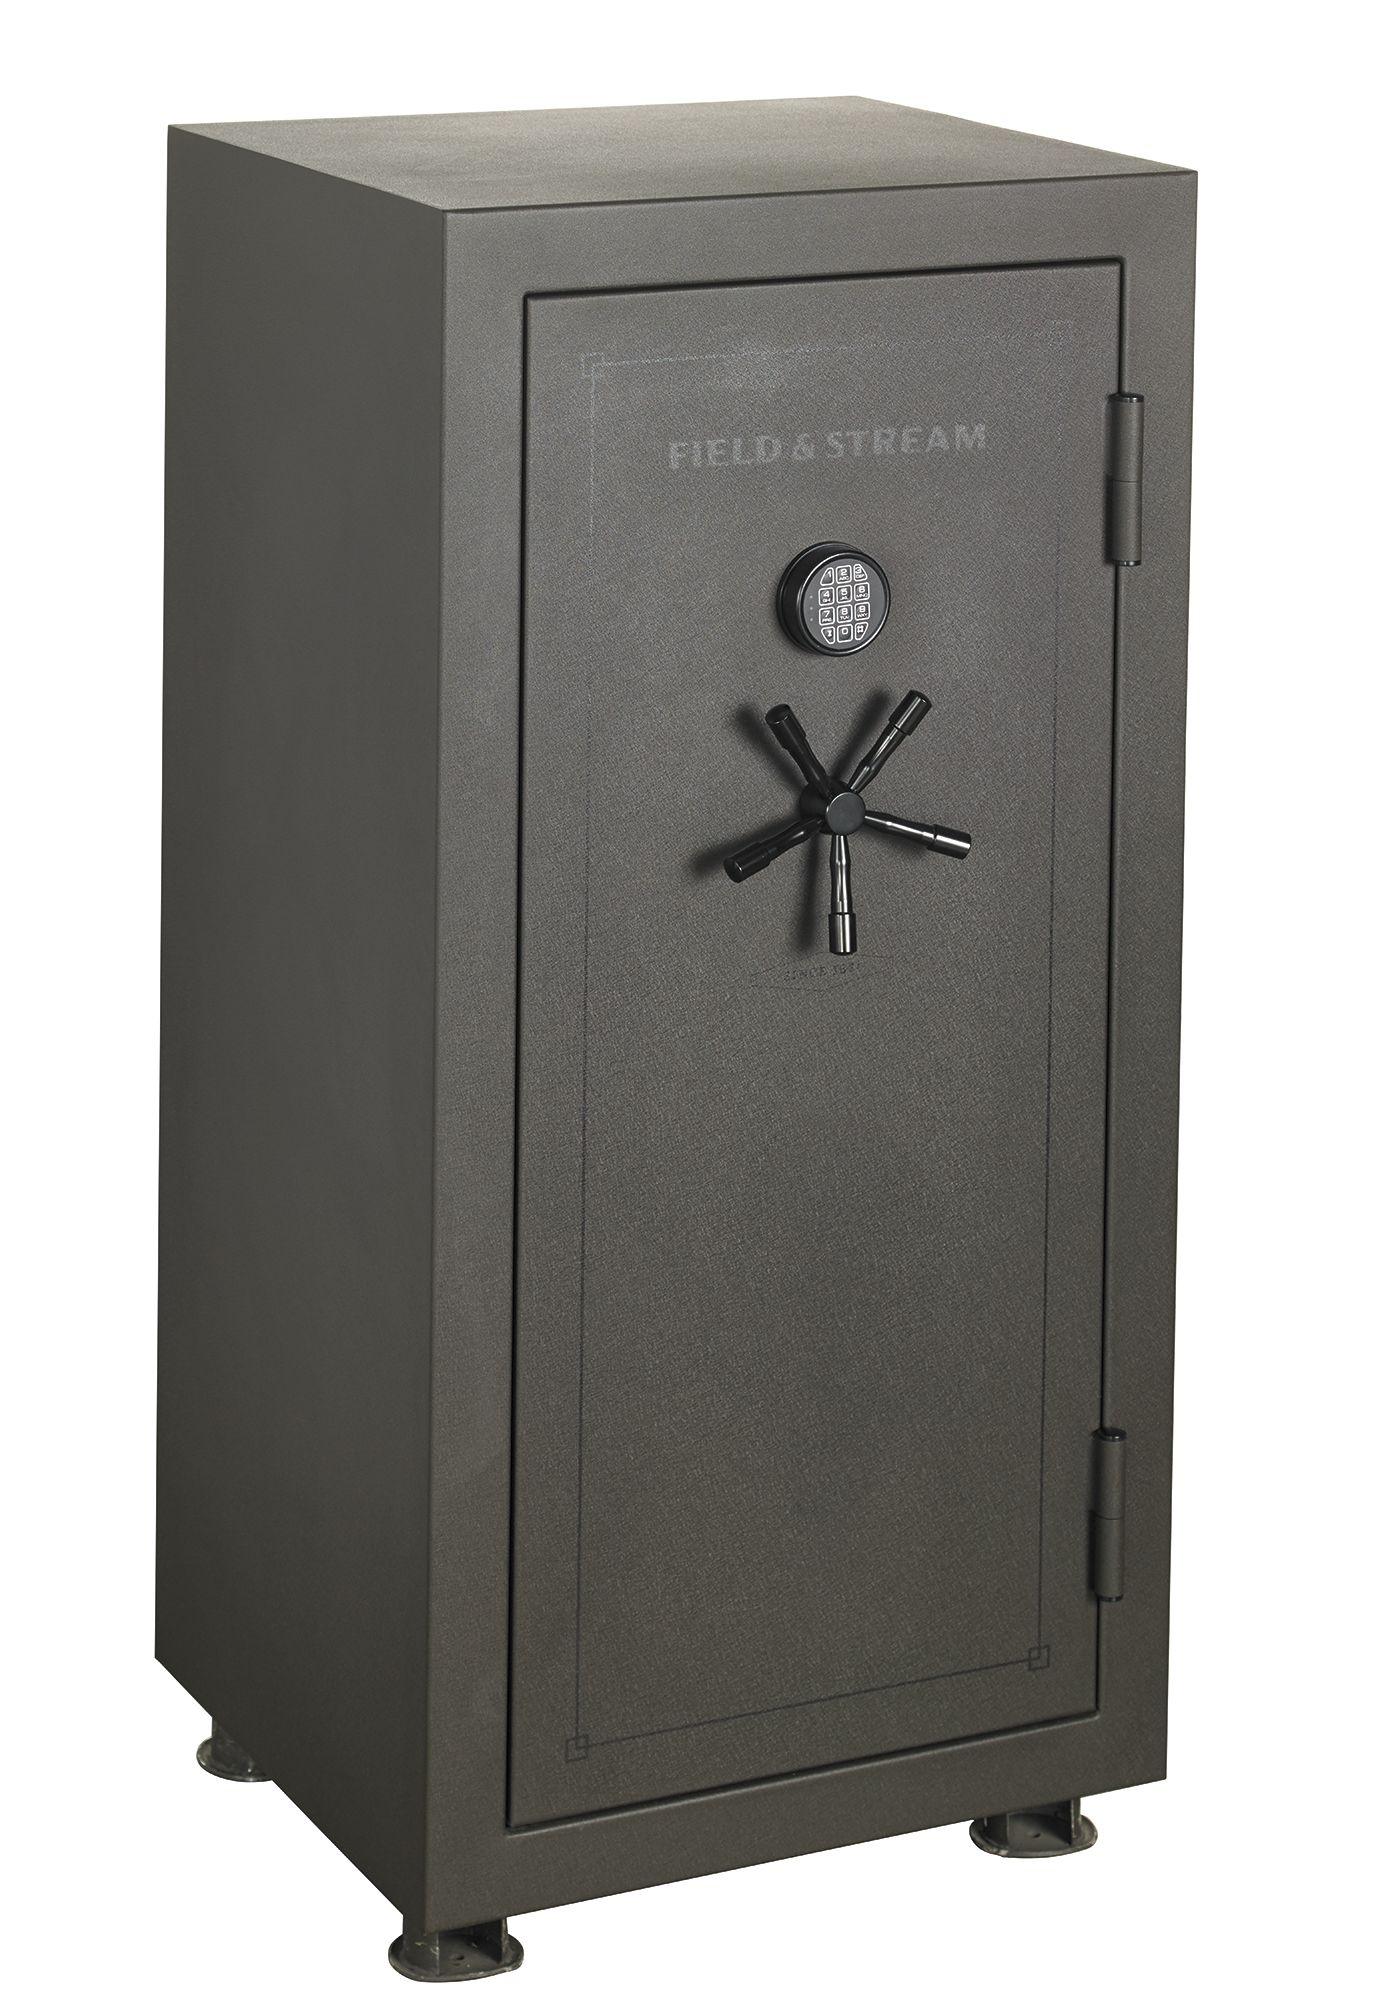 Field & Stream Pro Series 36+6 Gun Fire Safe with Electronic Lock